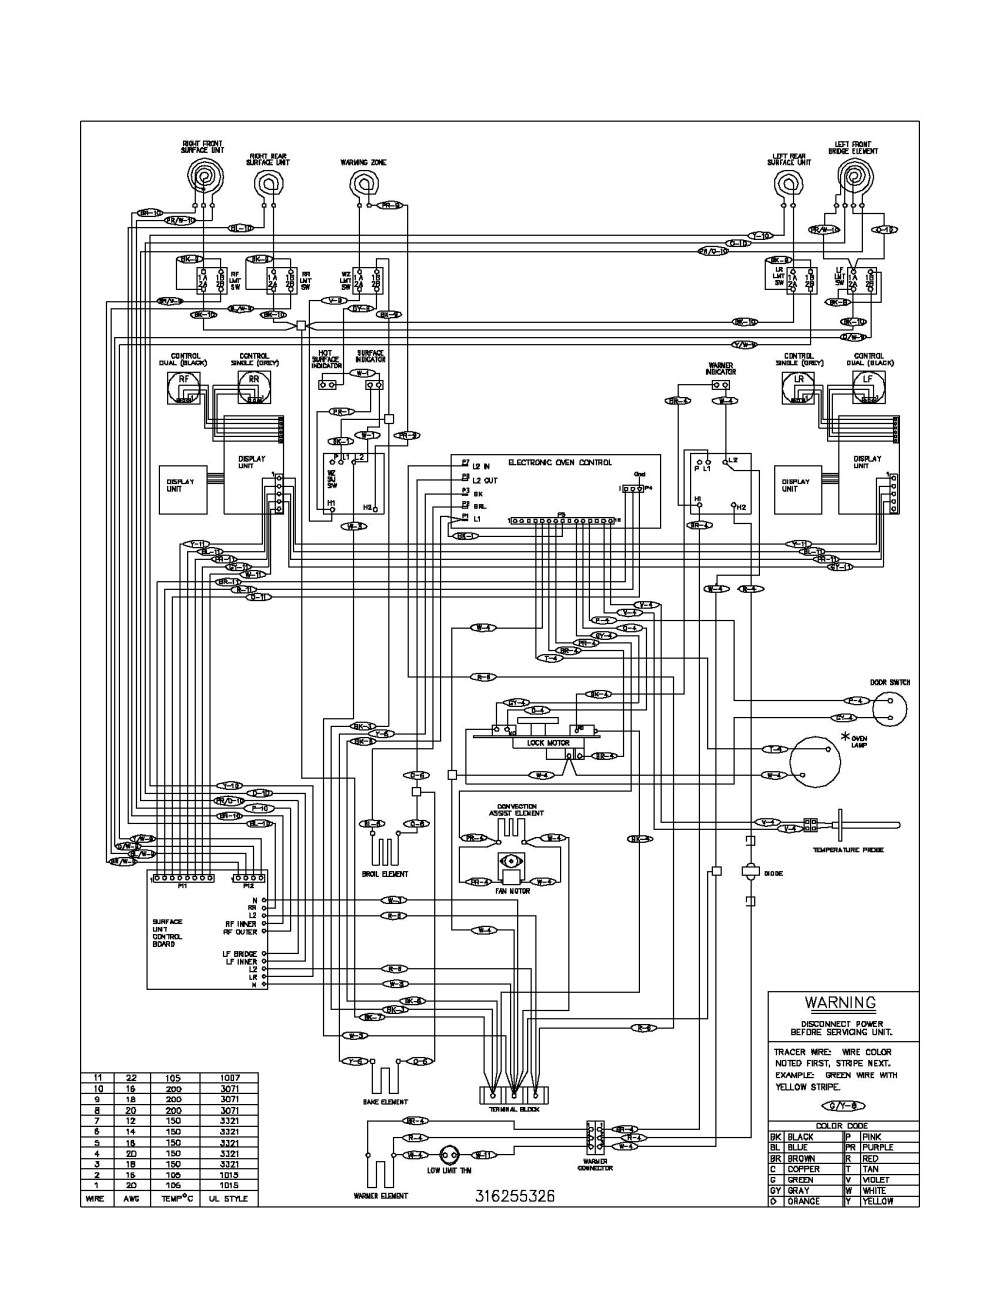 medium resolution of best of electric stove wiring diagram wiring stove and oven wiring diagram electric stove wiring diagram infinite switch